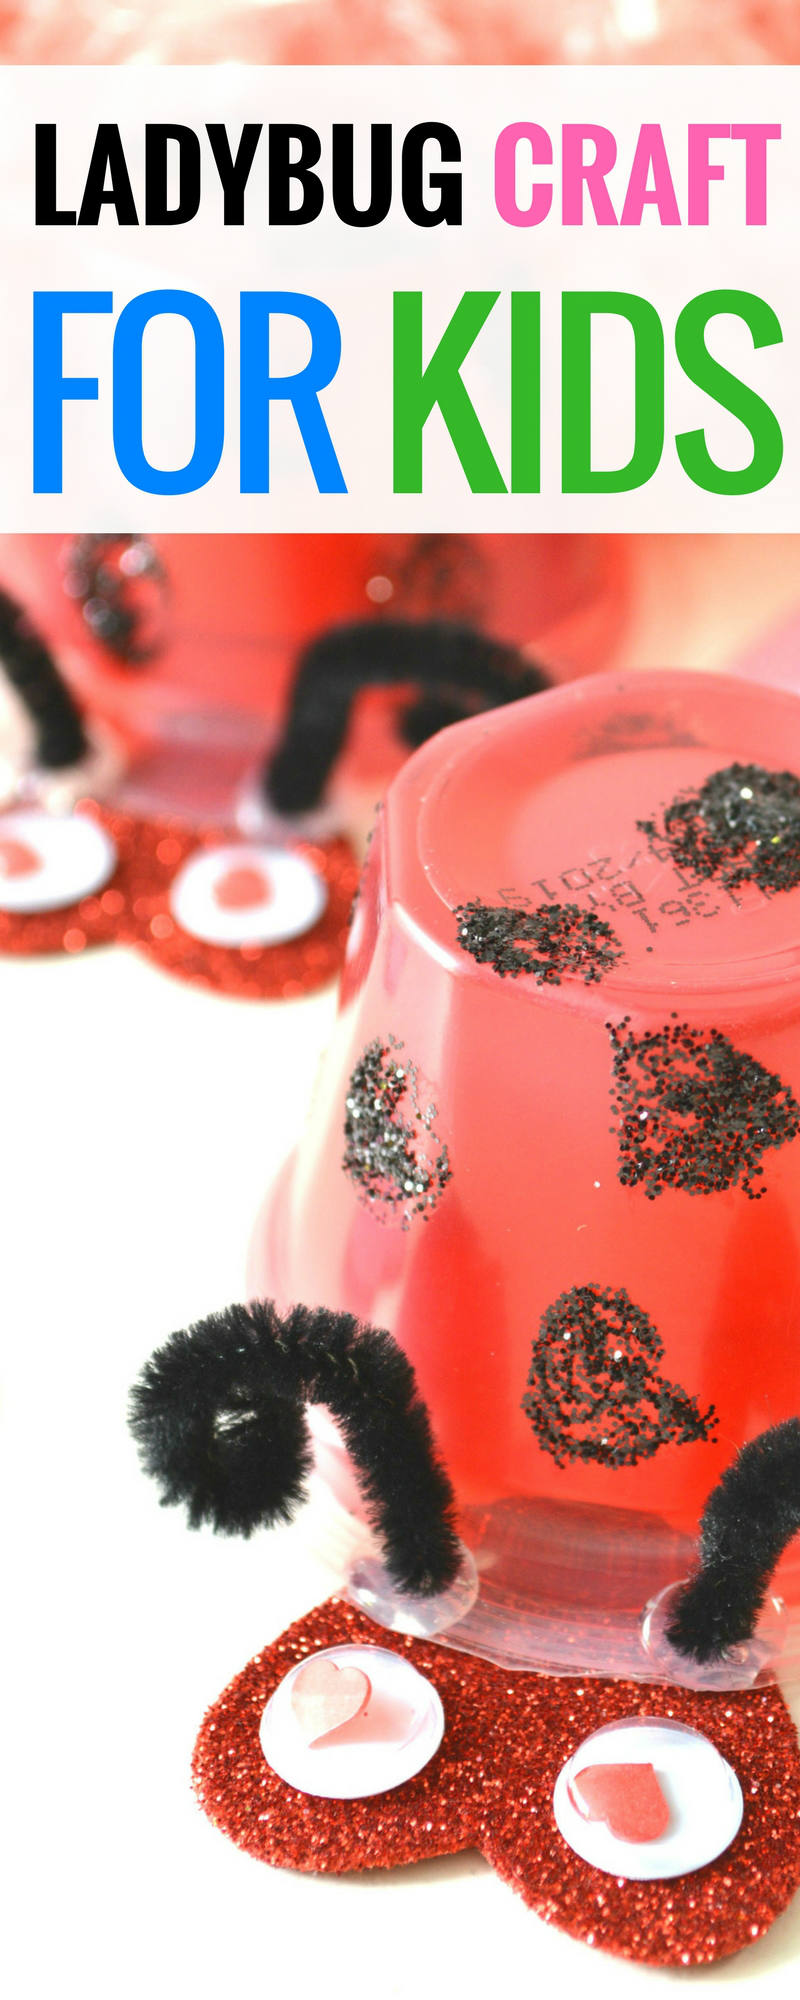 ladybug crafts for kids This is such a fun ladybug craft to make with kids. It's great for valentine's day with the red hearts as well. Kids will have fun with this easy DIY craft   ladybug crafts   ladybug crafts for toddlers   ladybug crafts preschool #craft #craftsforkids